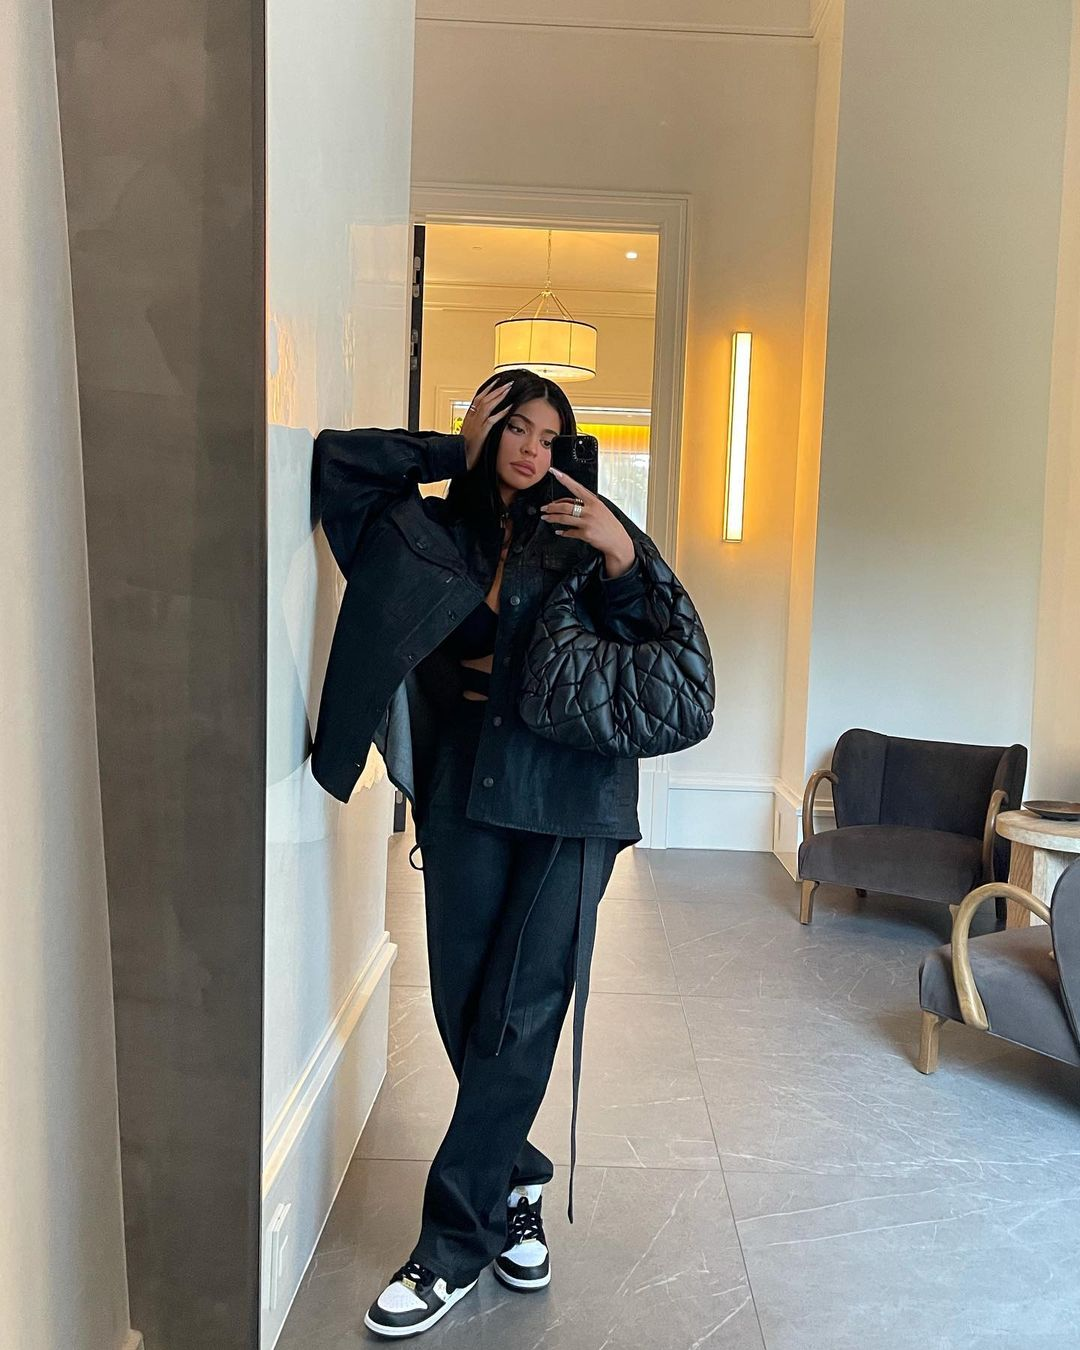 Kylie Jenner wearing brand logo black white lace-up sneakers by Nike with flat heel and printed motifs